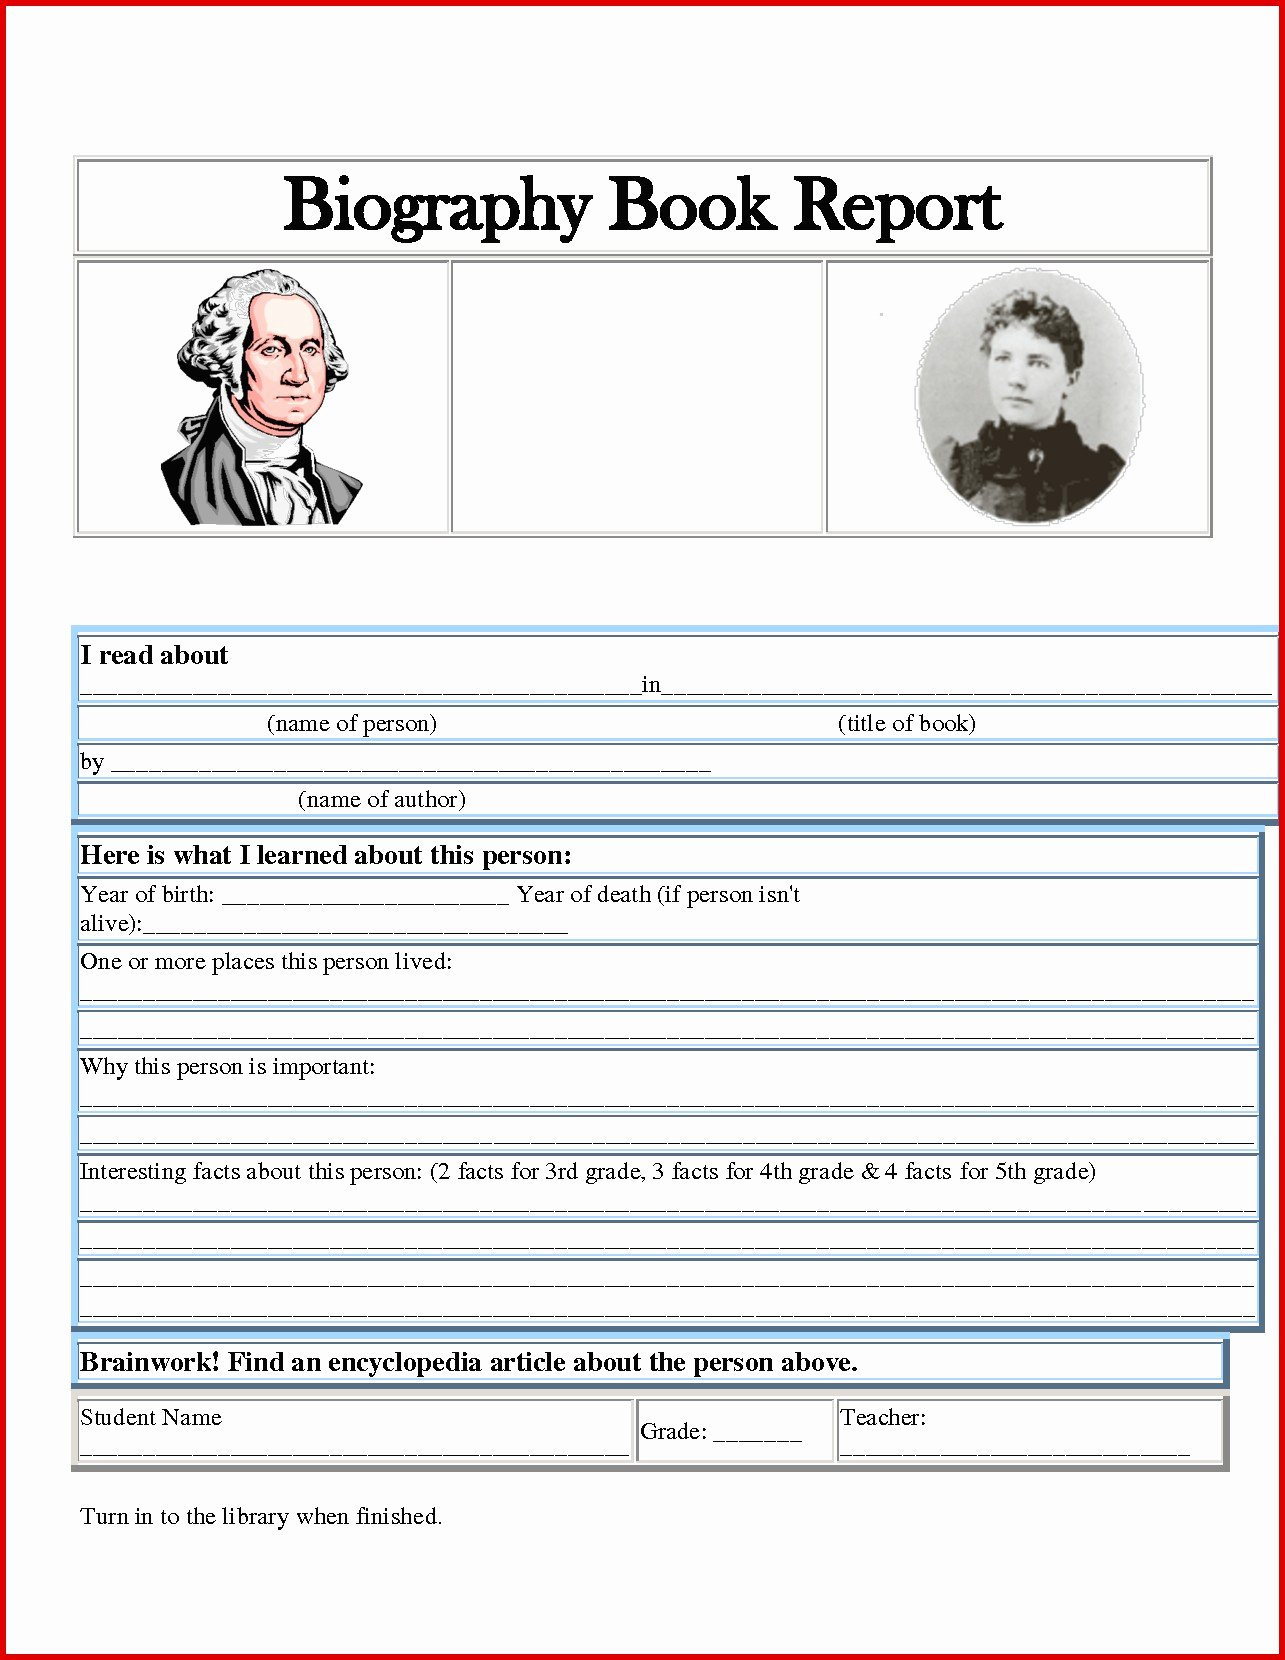 Biography Book Report Template Fresh E Page Book Report Template New Awesome Author Biography